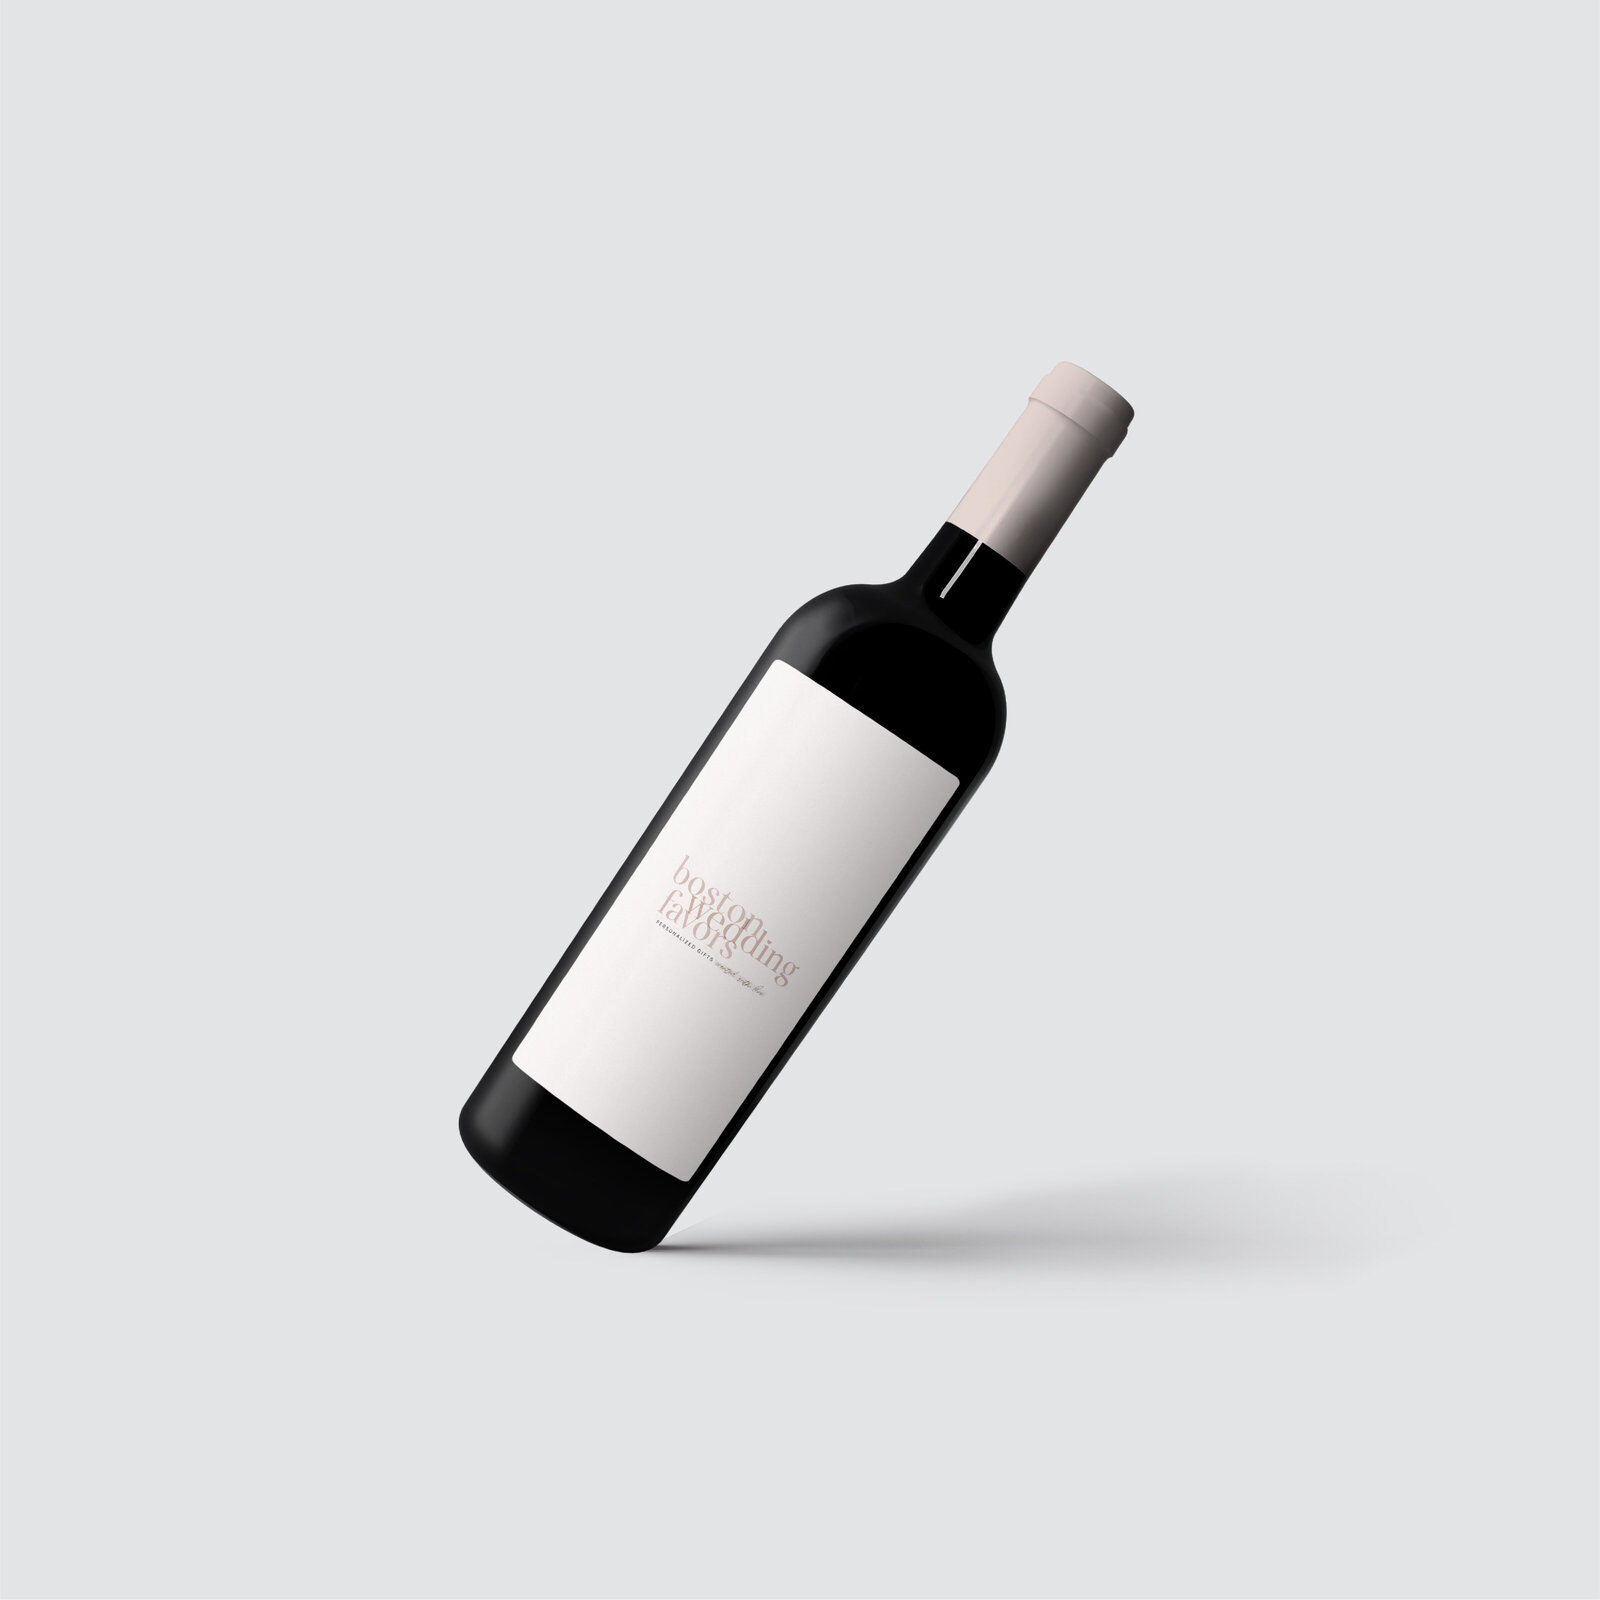 Instagram_Design Mockup 4- BWF Wine Bottle